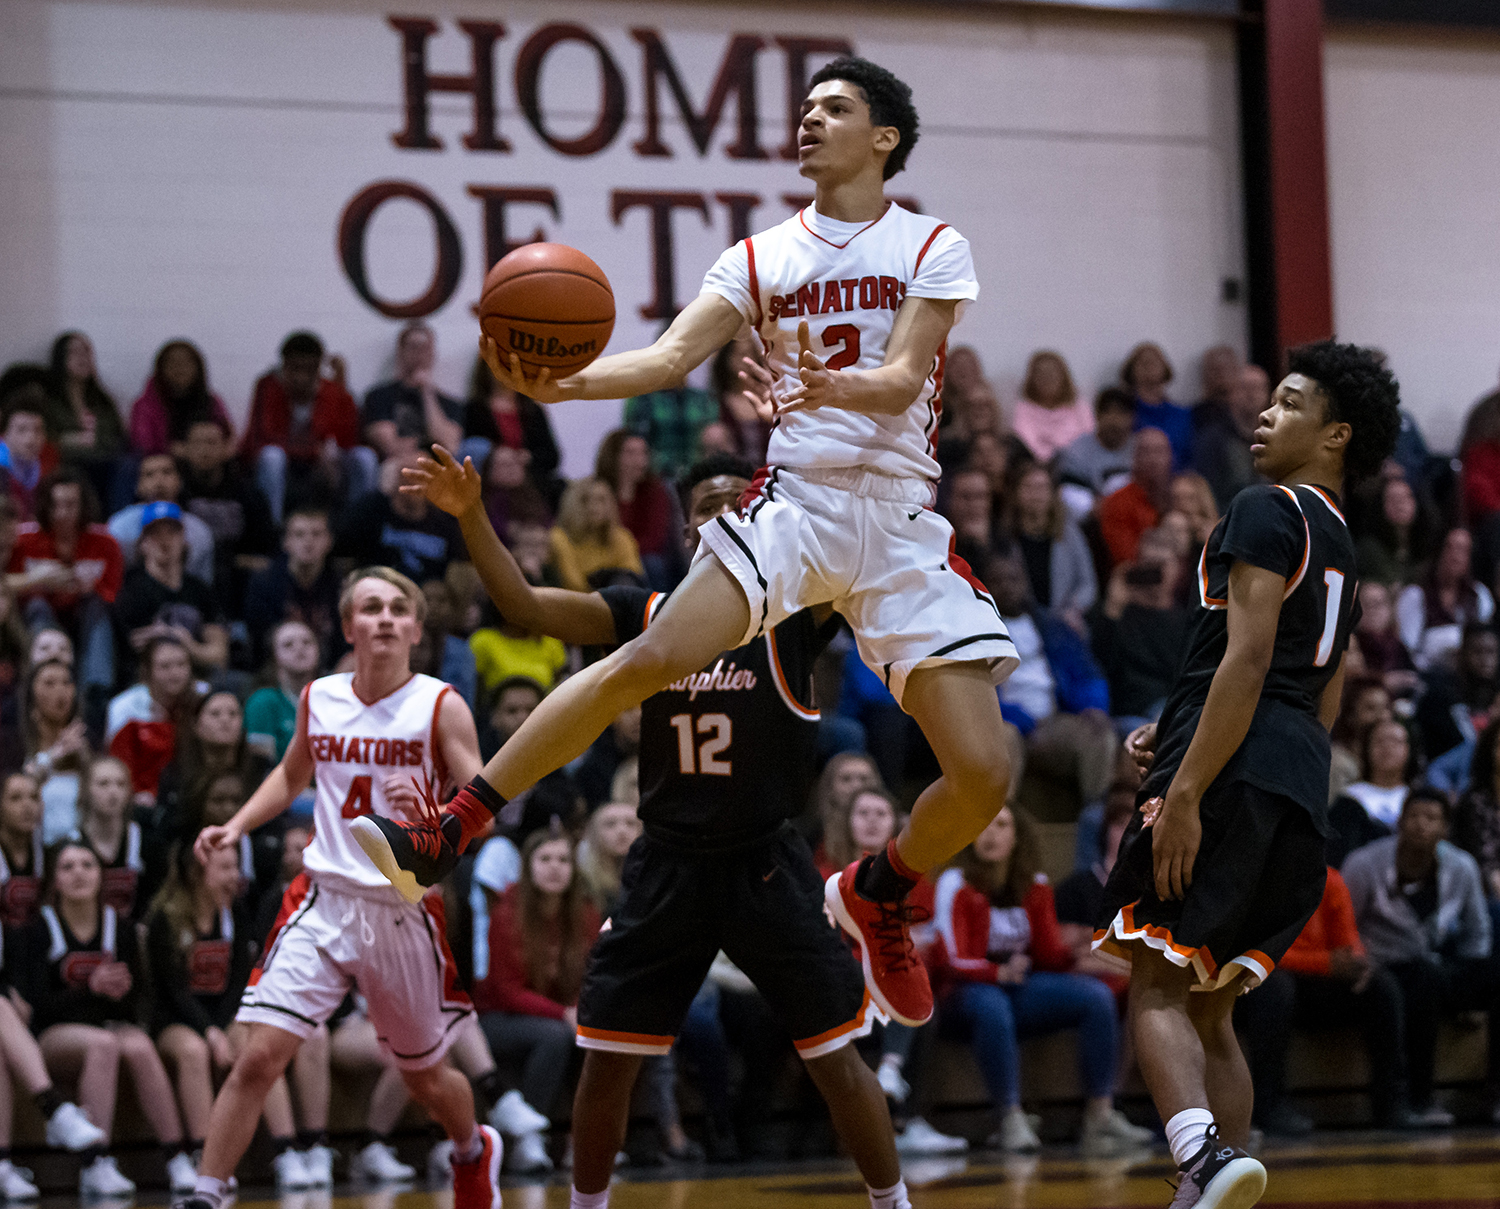 Springfield's Bennie Slater (2) goes up for a shot against Lanphier's Mehkii Phillips (1) in the first half at Springfield High School, Tuesday, Feb. 19, 2019, in Springfield, Ill. [Justin L. Fowler/The State Journal-Register]